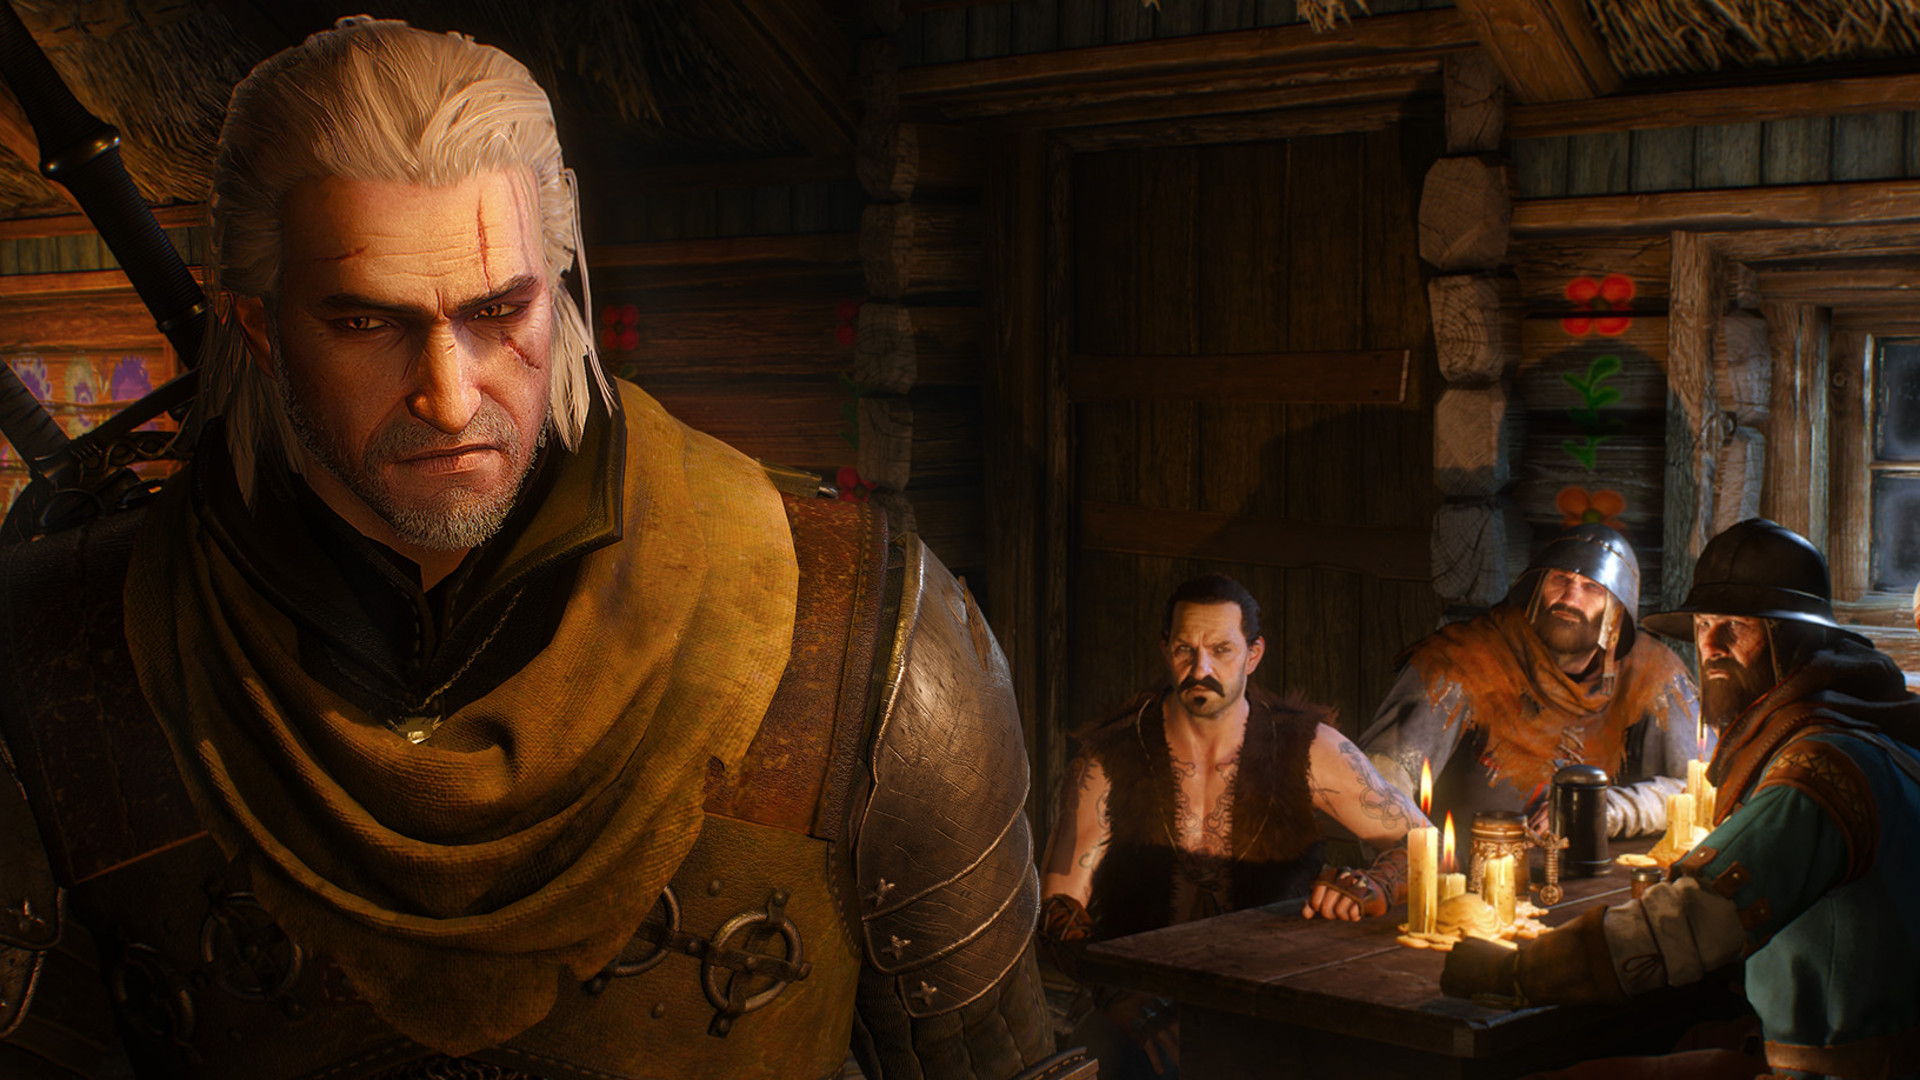 The Witcher 3 next-gen update might include popular mods